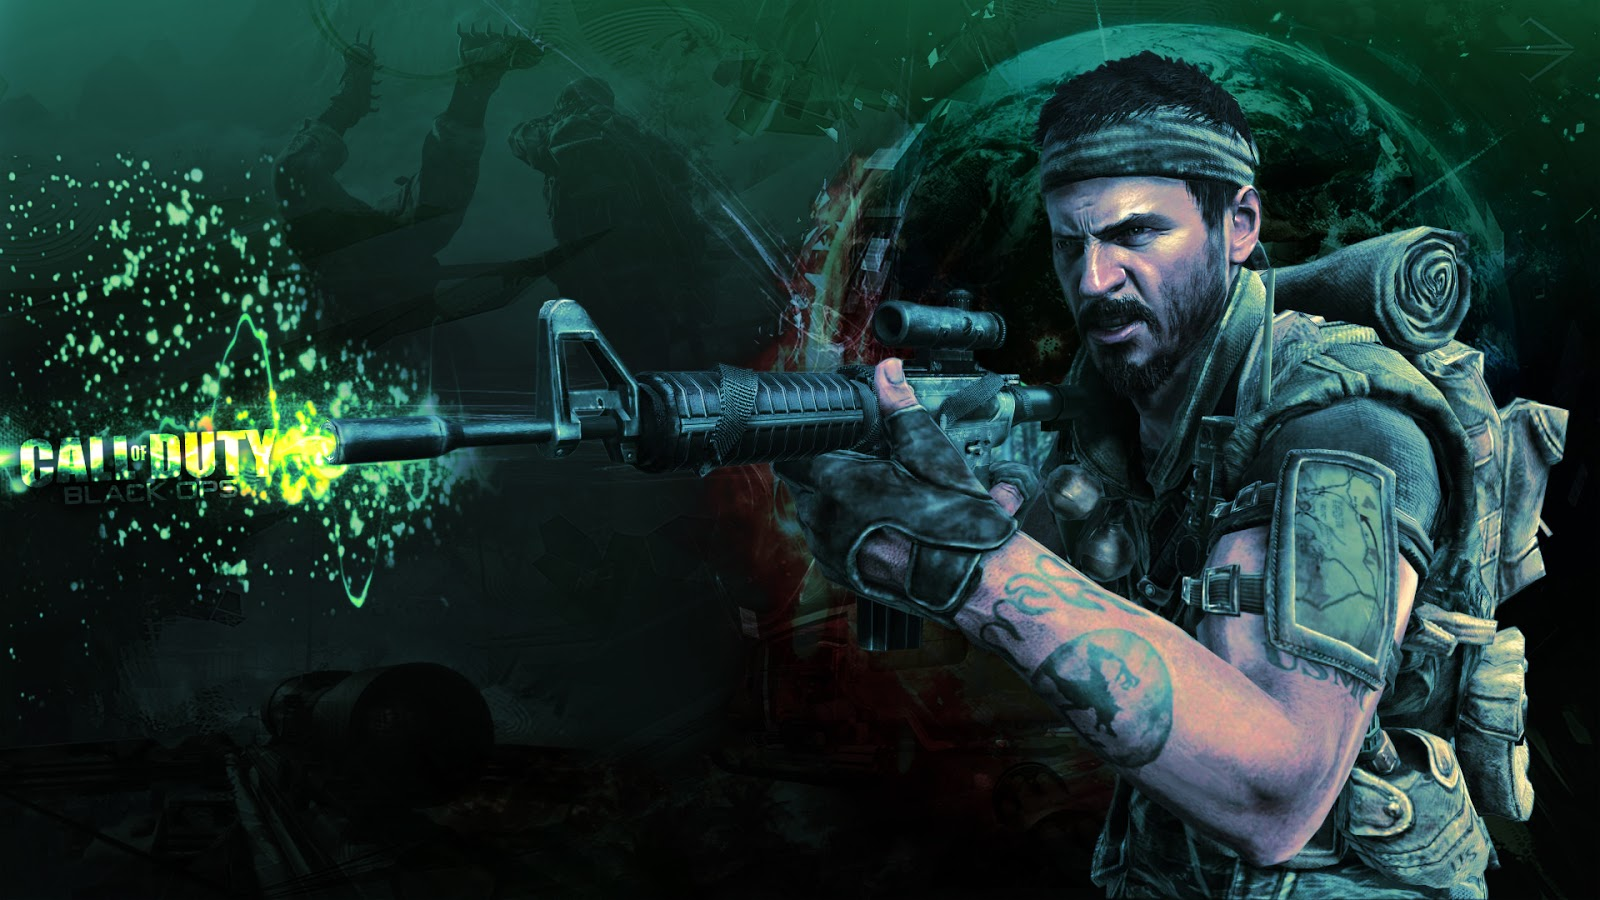 call of duty game wallpapers hd nice wallpapers